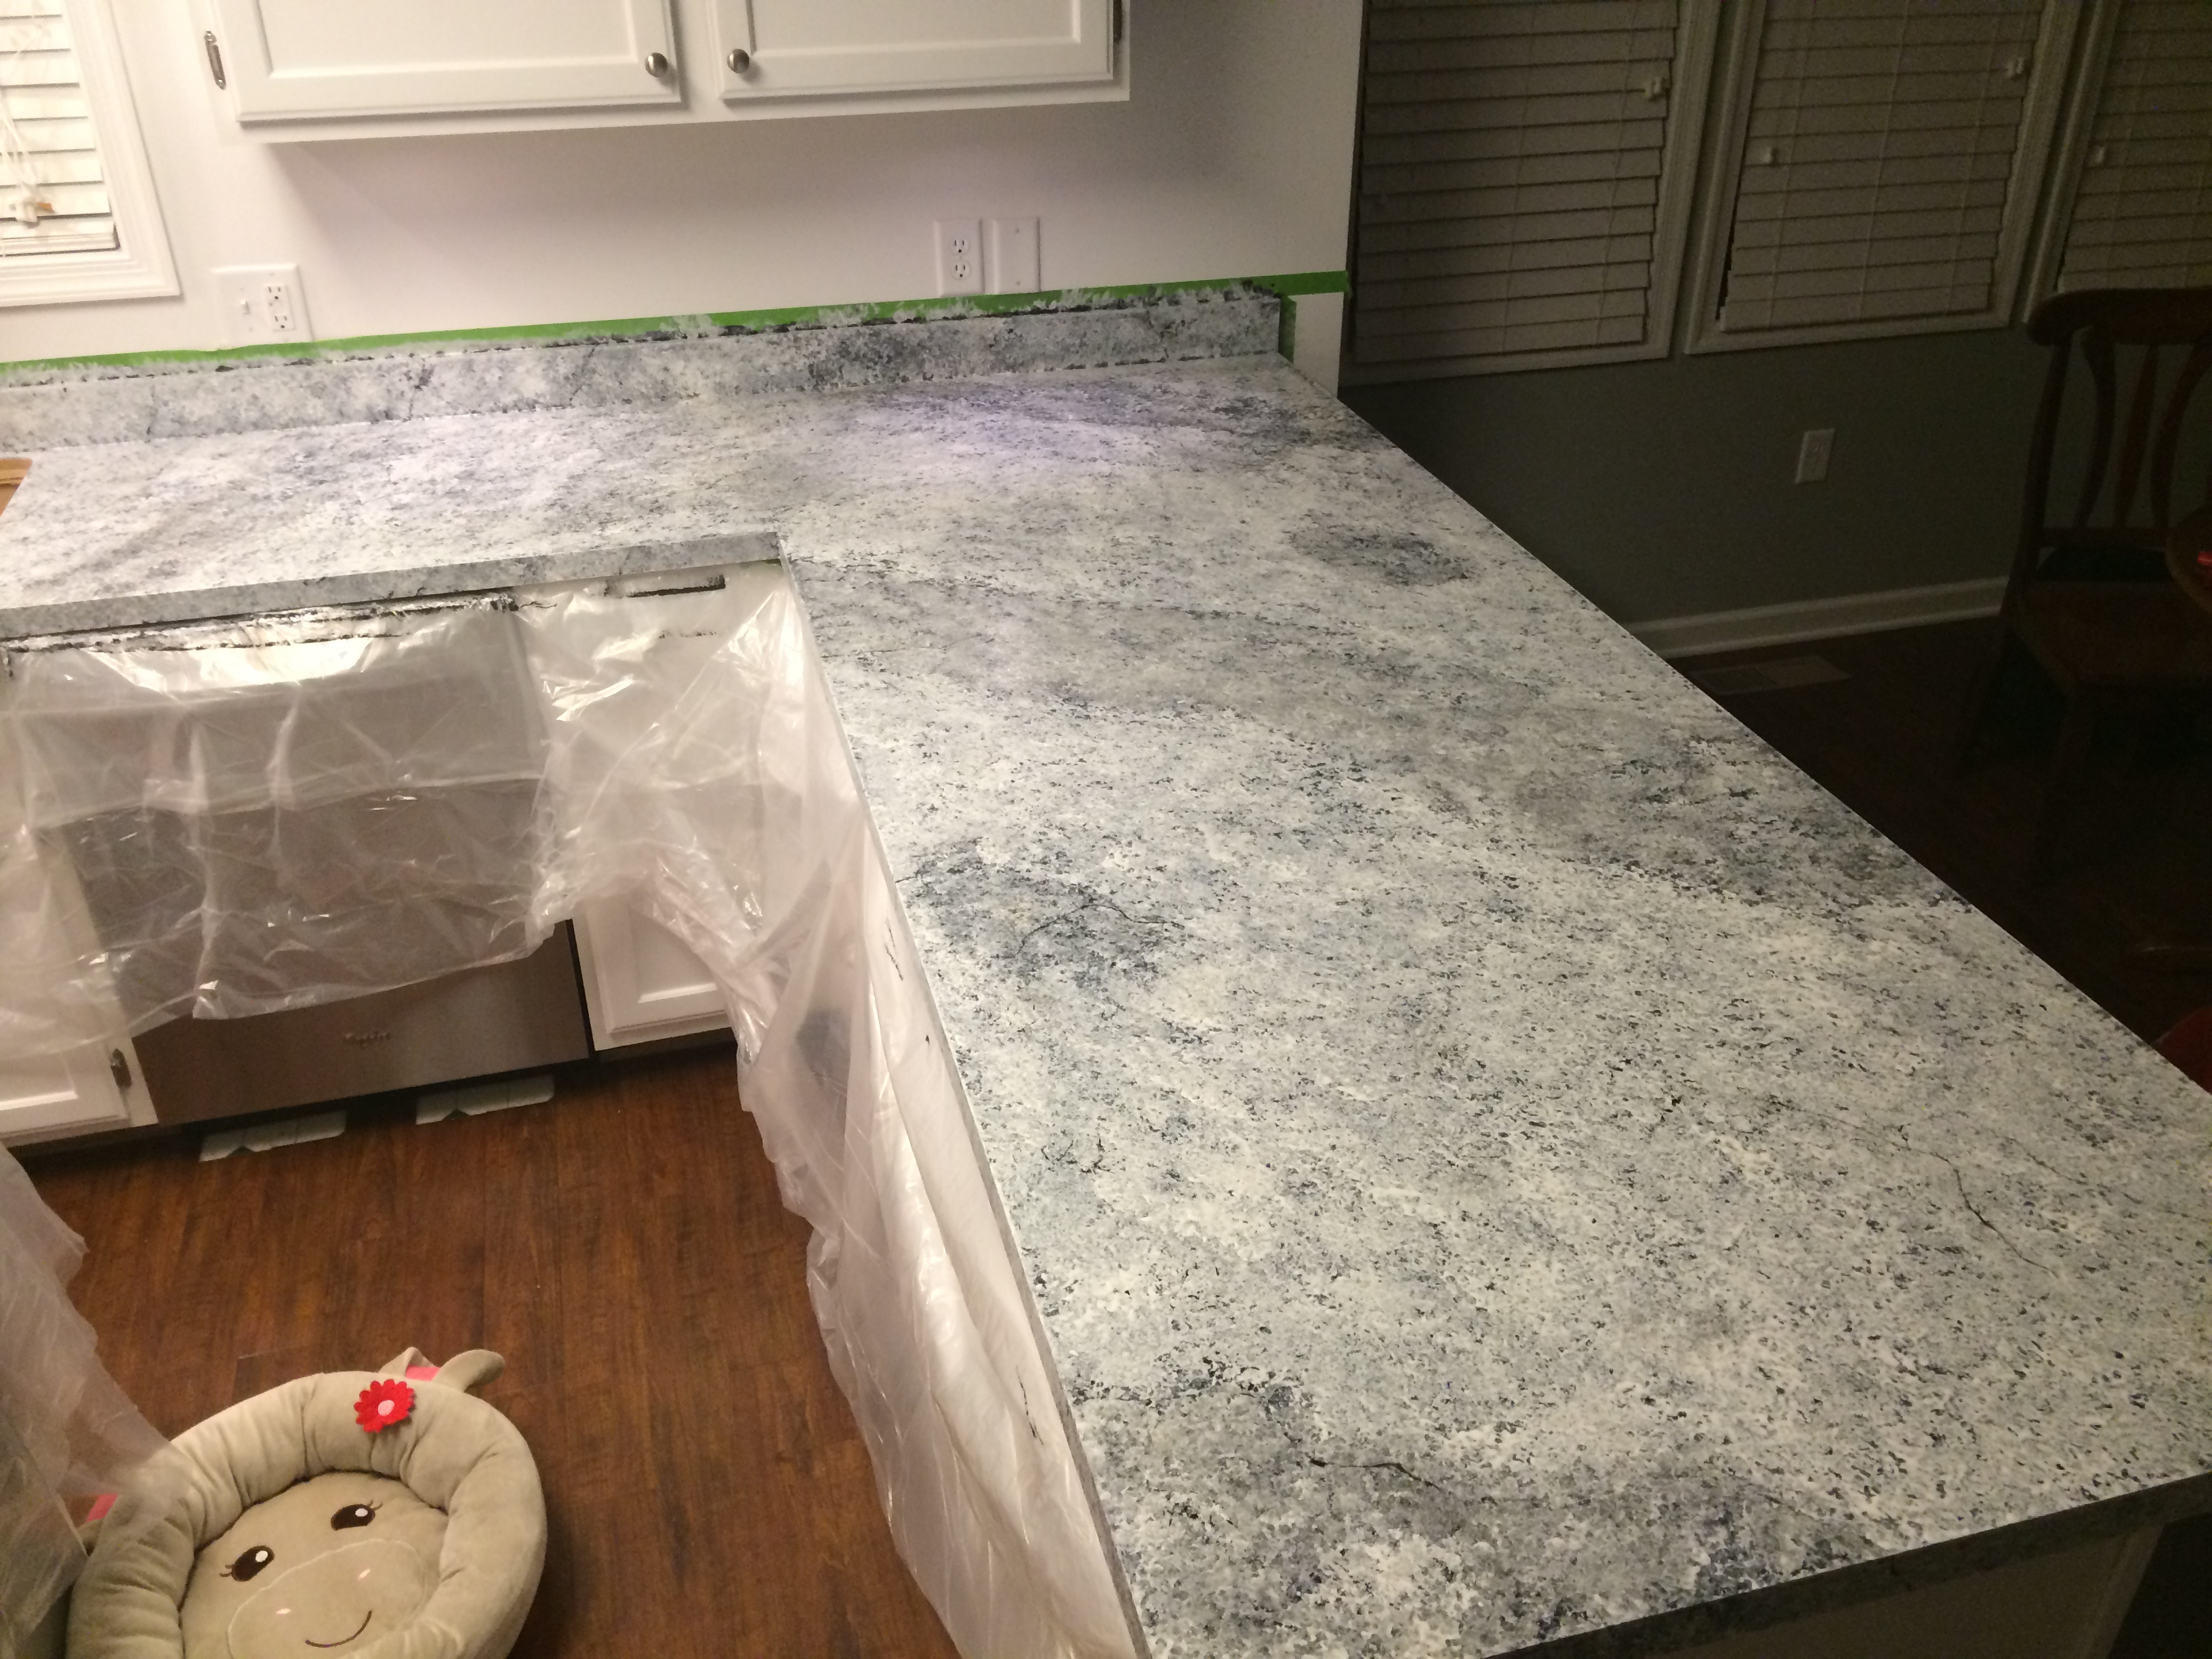 Giani Countertop Paint Veining : Countertop Redo with Giani Granite Countertop Paint ? Life in Pearls ...